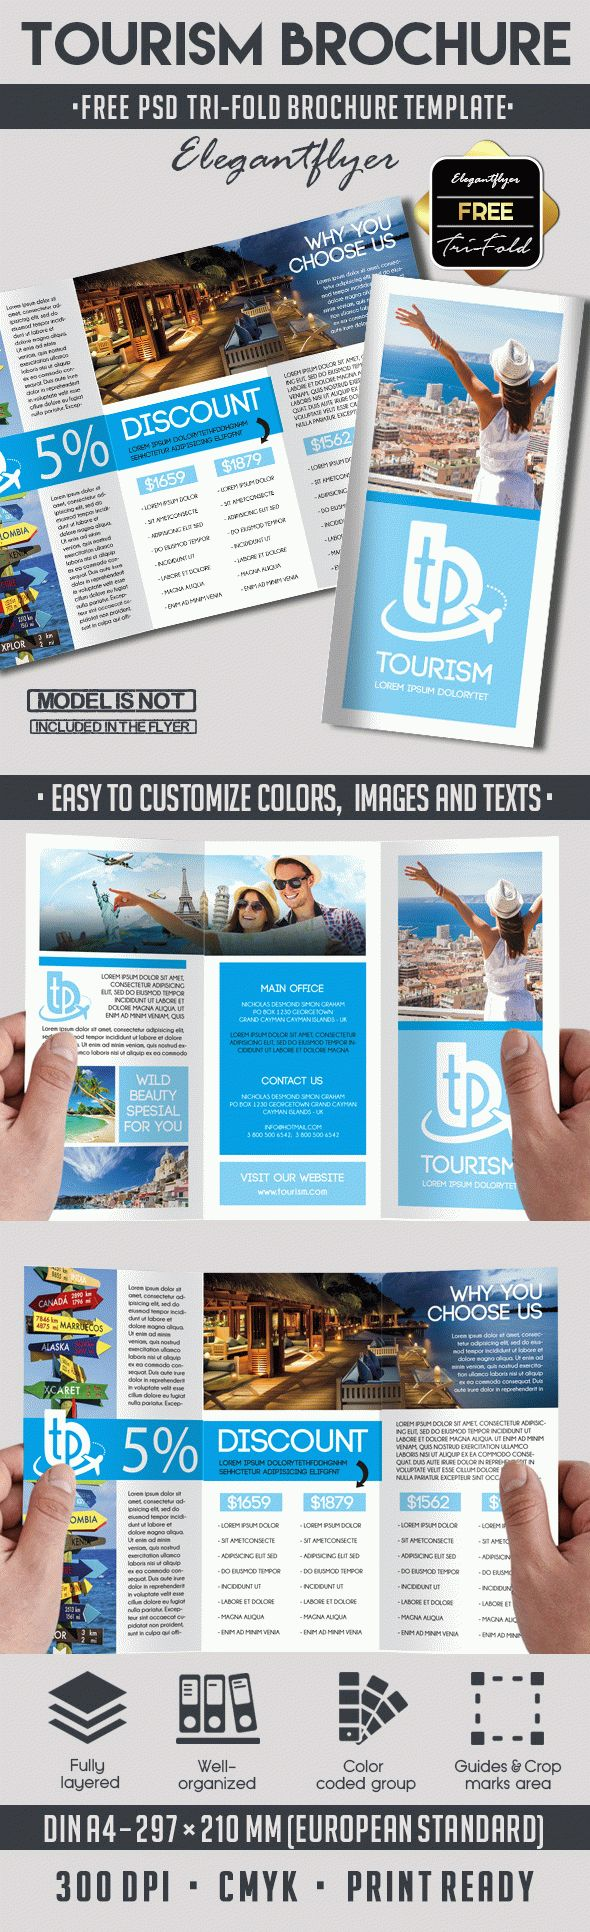 Tourism free psd tri fold psd brochure template by for Free online tri fold brochure template